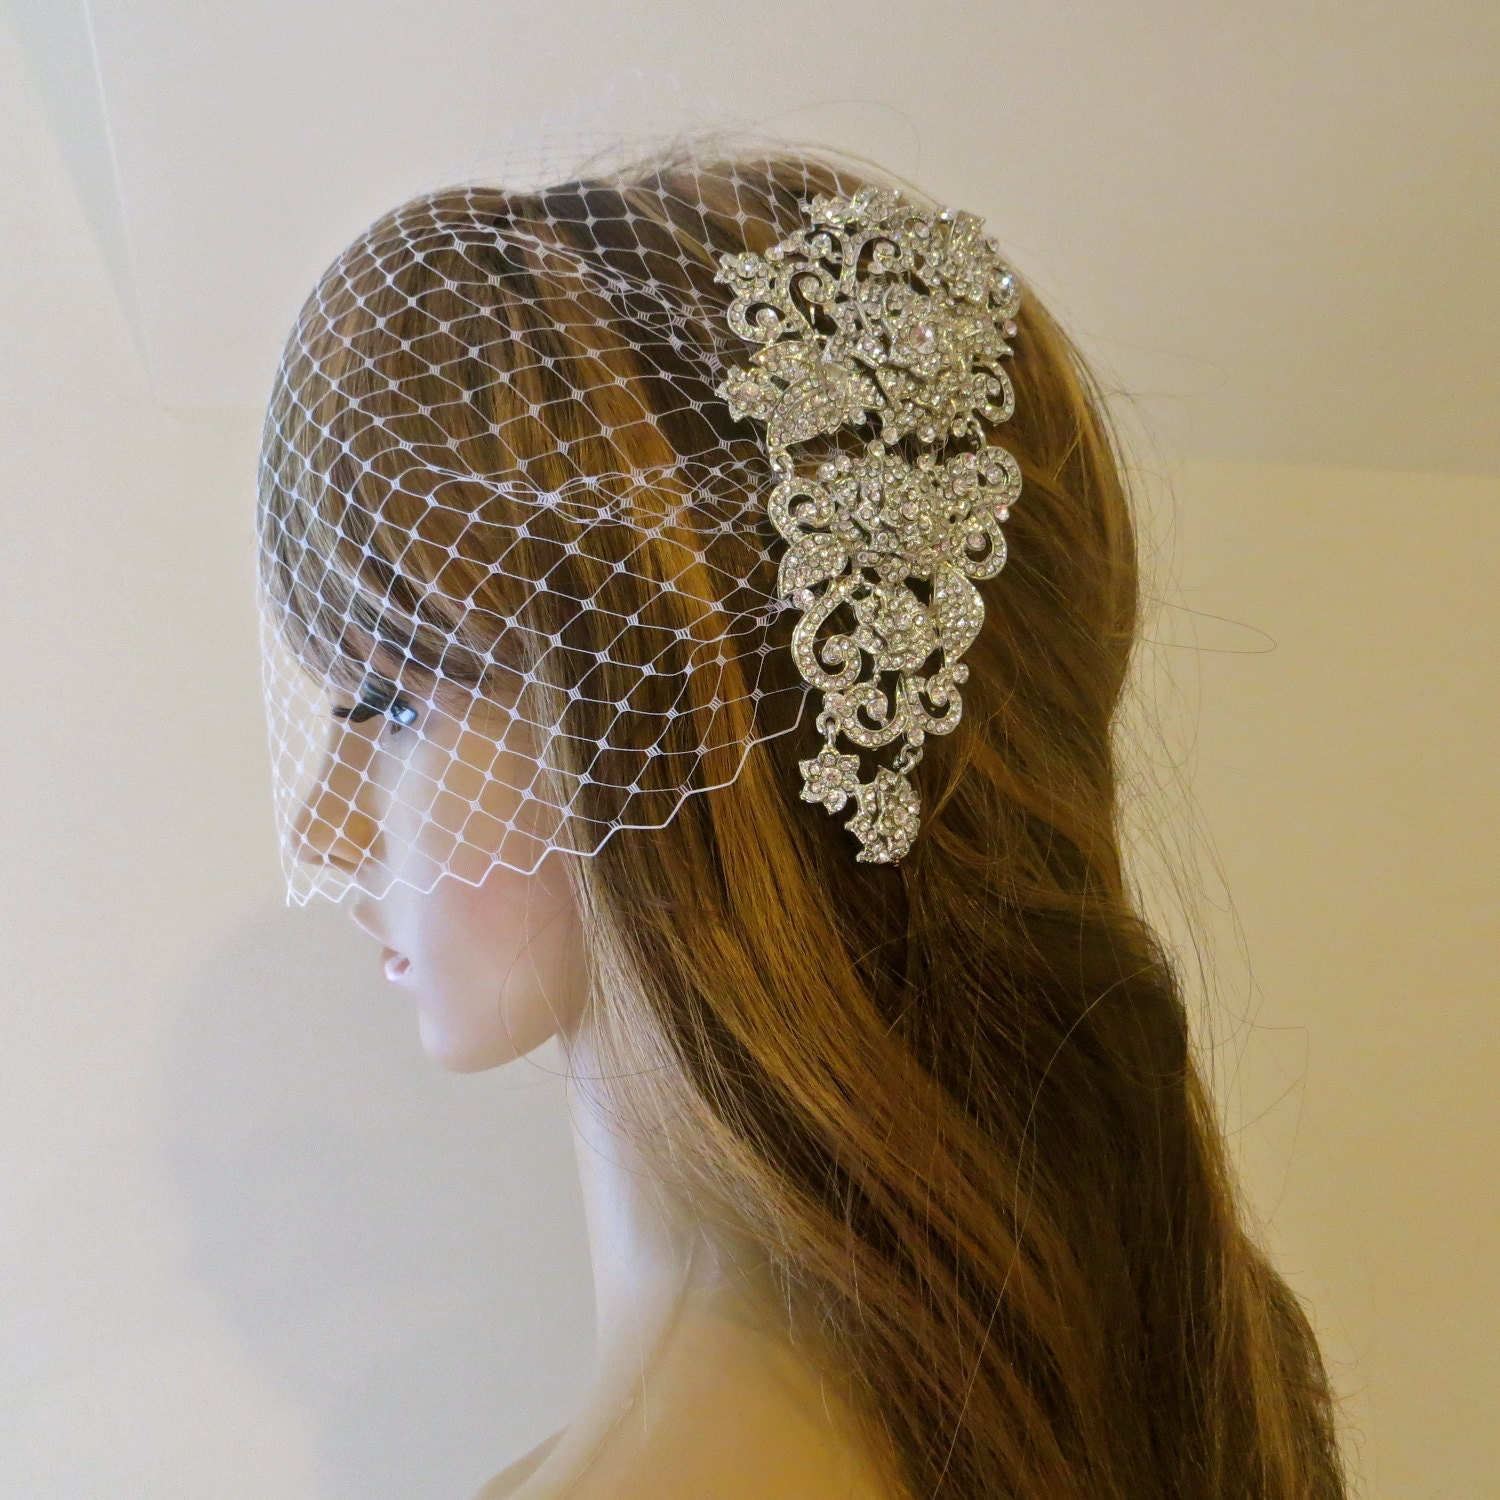 Rhinestone Bridal Veil Wedding Rhinestone Headpiece by ctroum